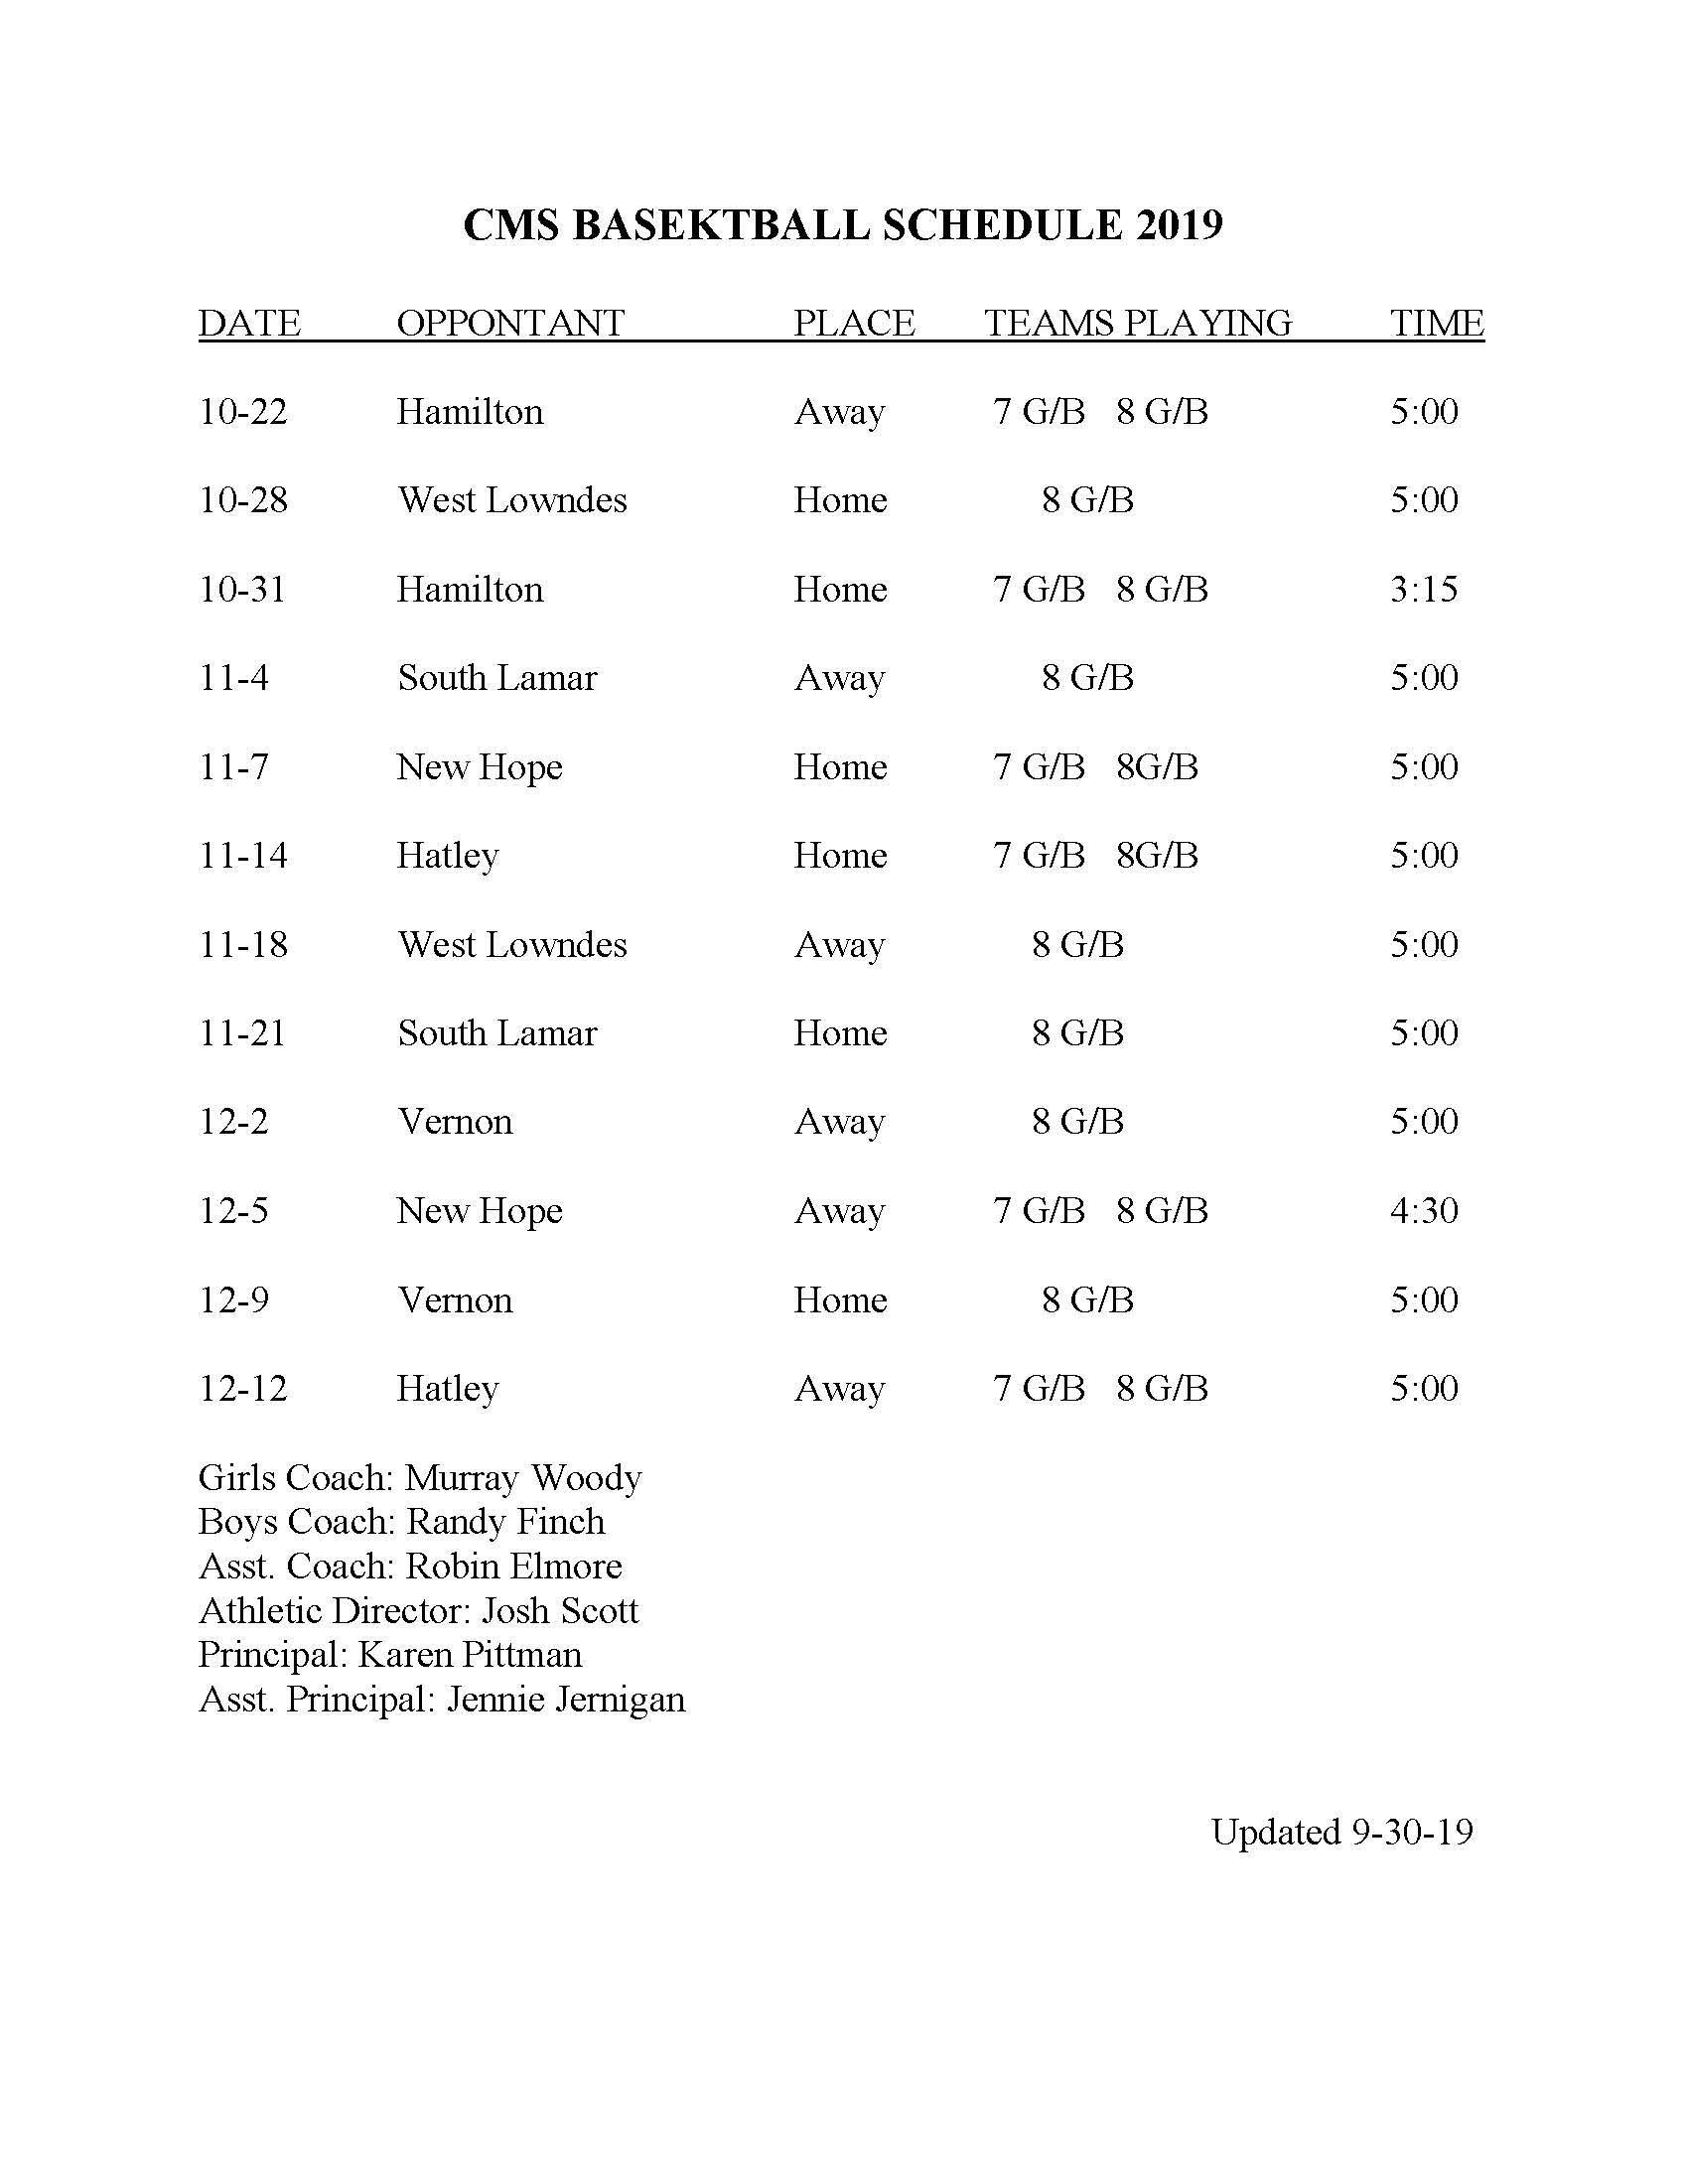 2019 CMS Basketball Schedule